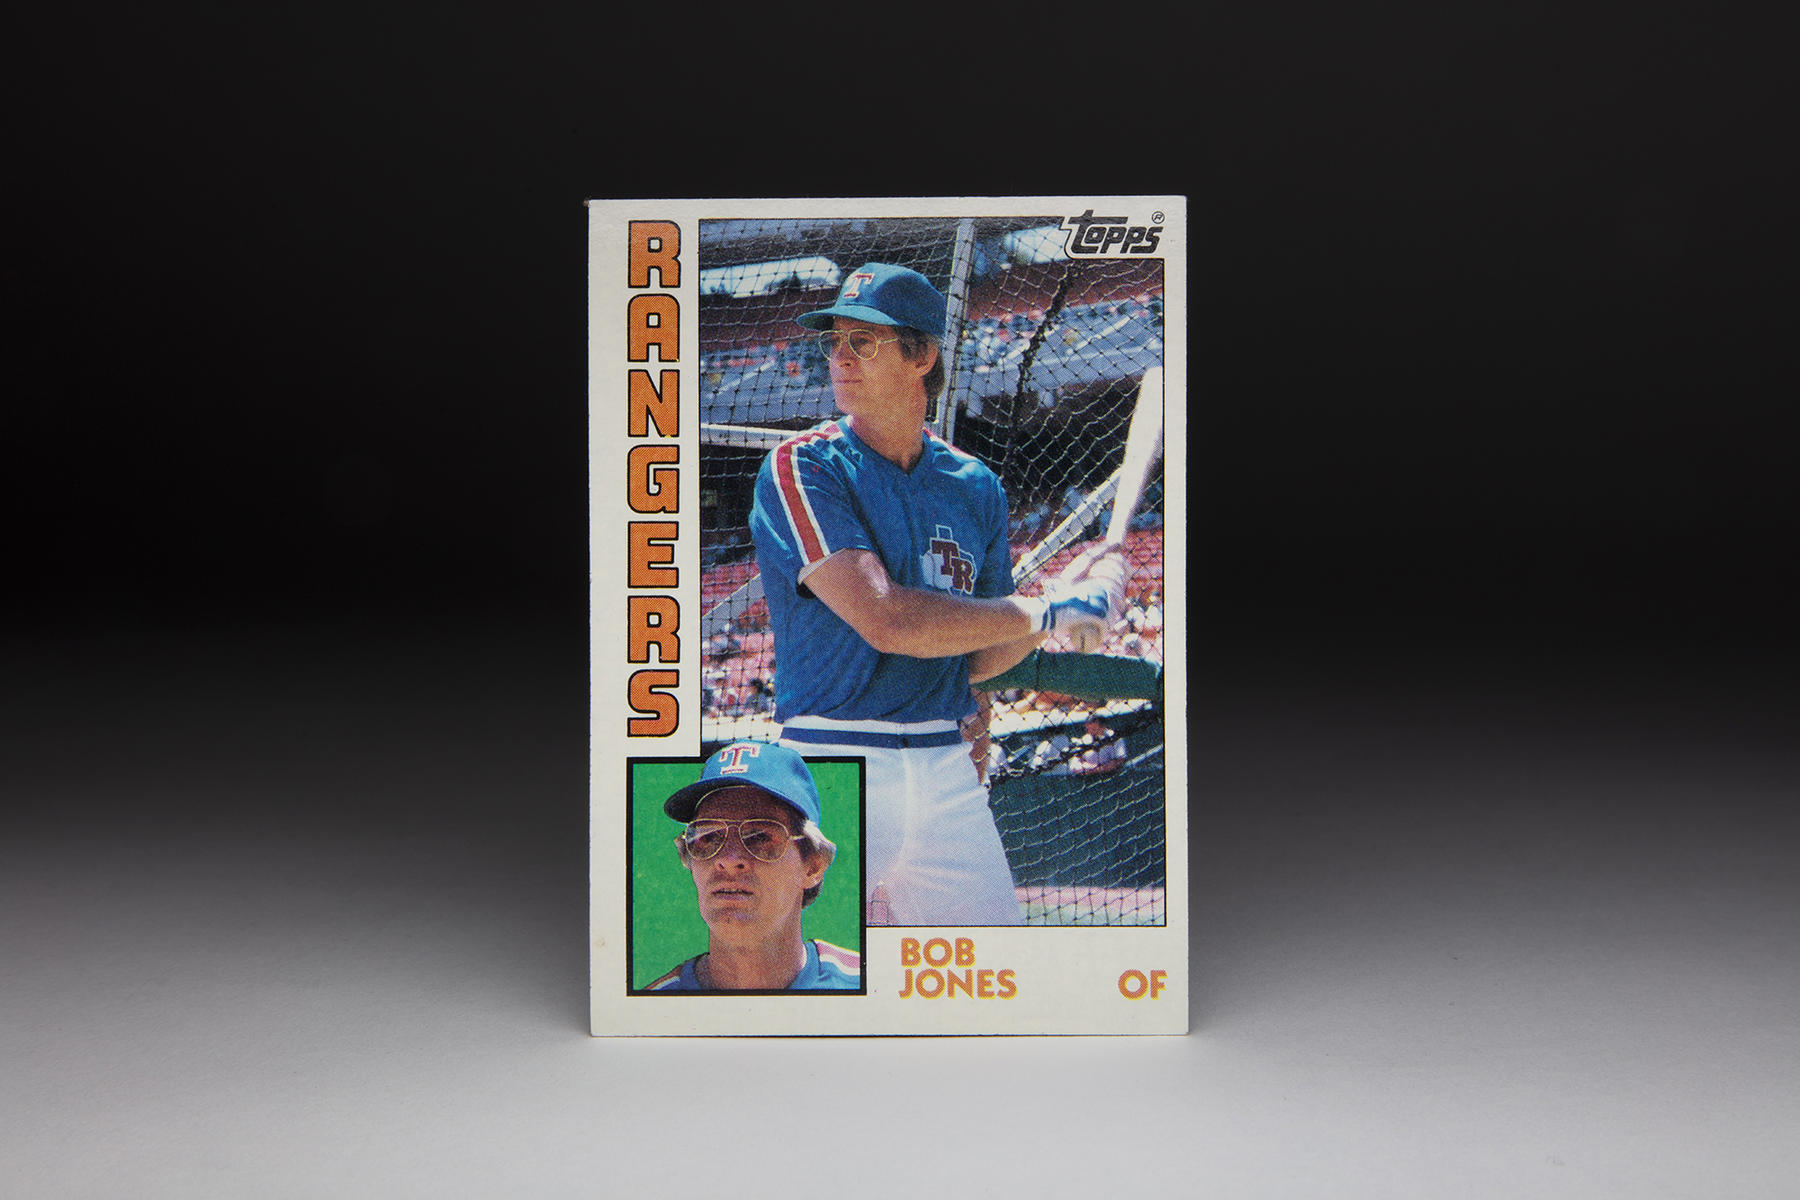 This 1984 Topps Bob Jones card features typical 1970s baseball attire for the era, but masks Jones' physical trauma. (Milo Stewart Jr./National Baseball Hall of Fame and Museum)